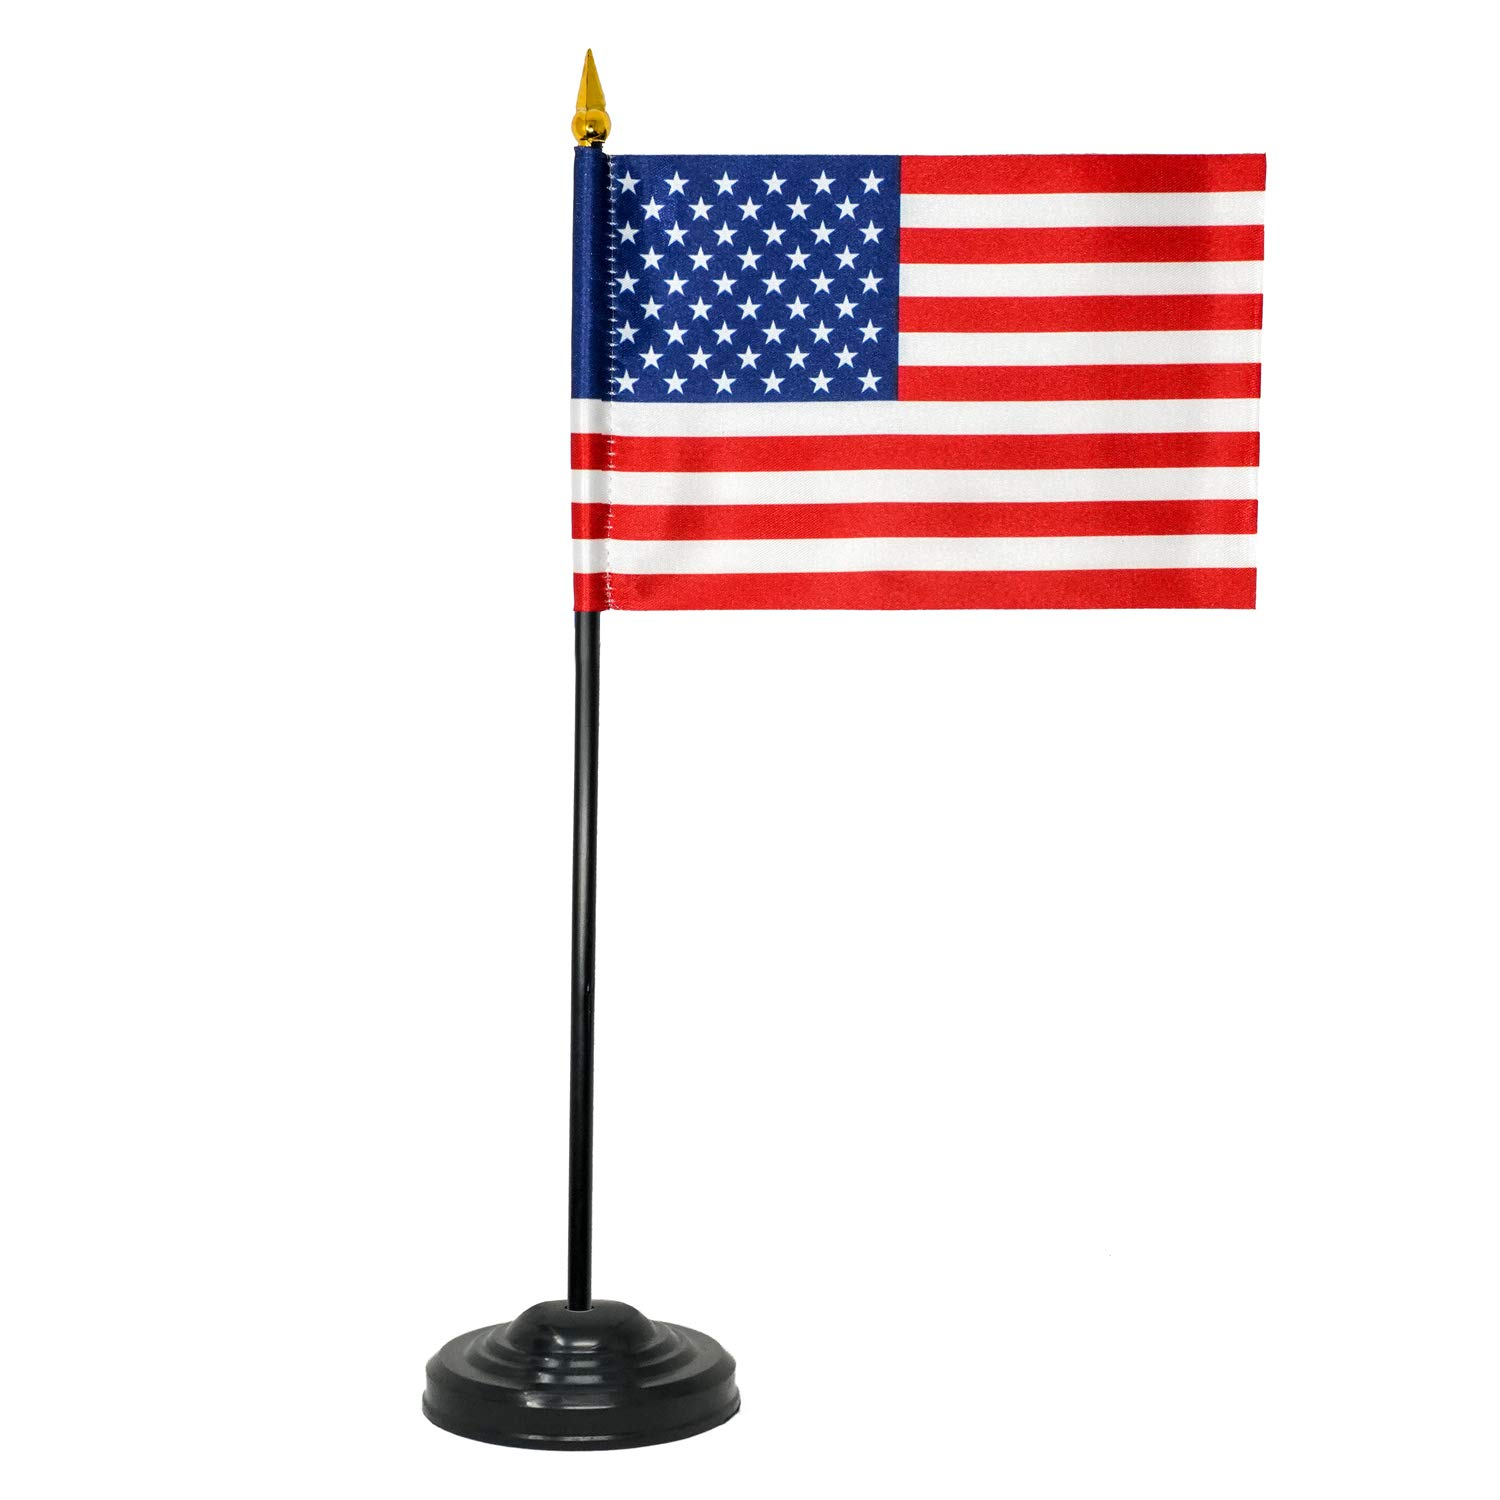 Small American Flag - Mini American Flag with Stand